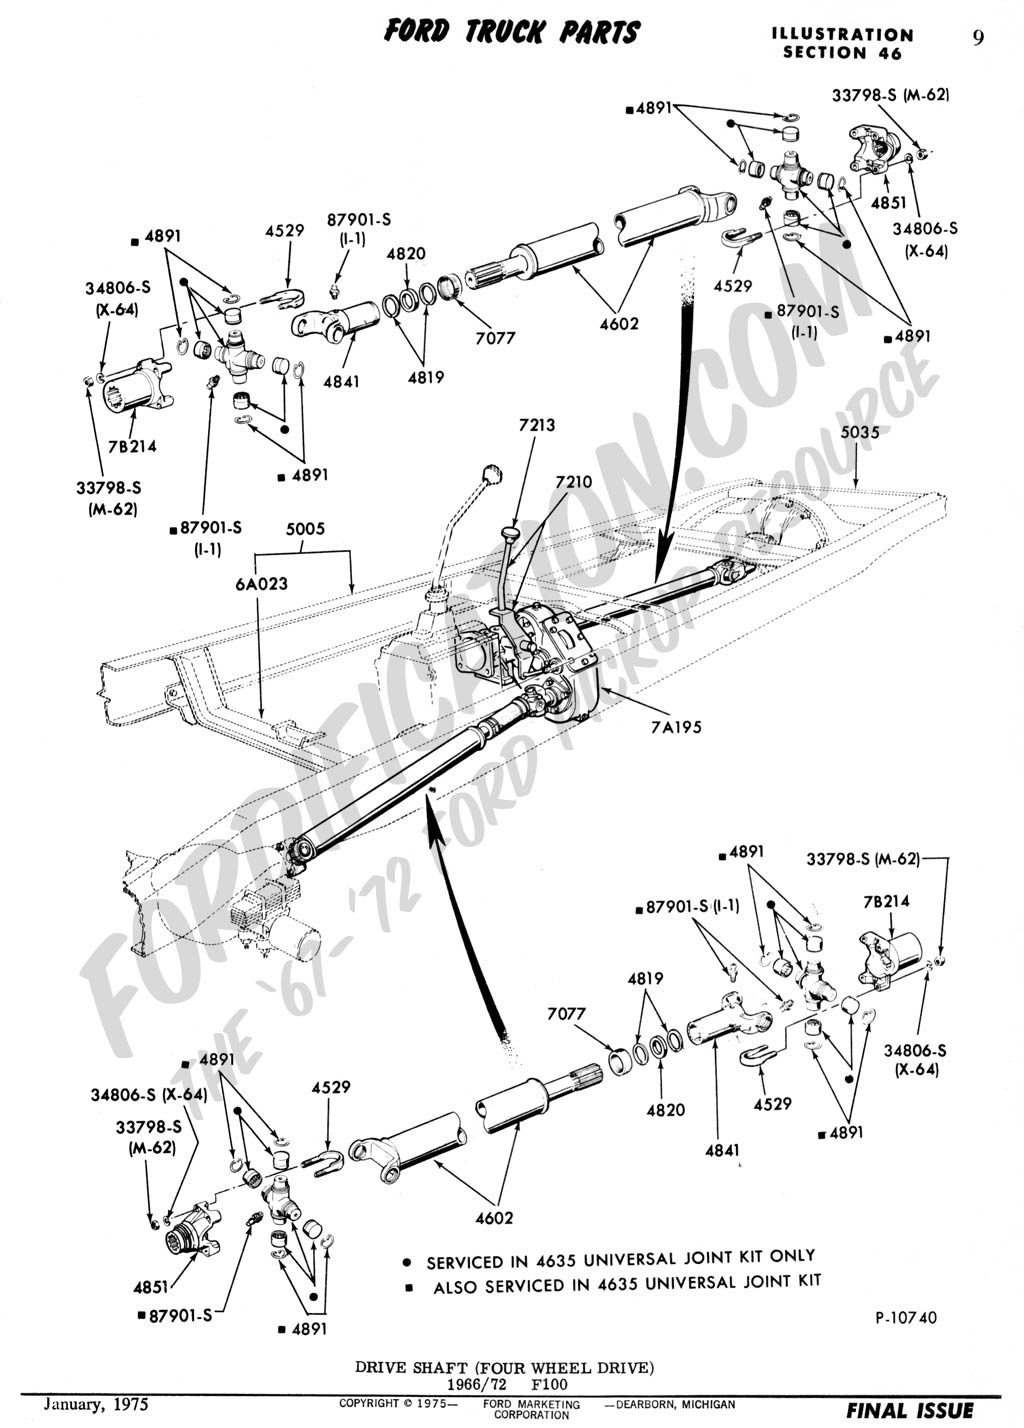 483421 1979 Ford Front Drive Shaft on 2004 f150 4 2 liter diagram